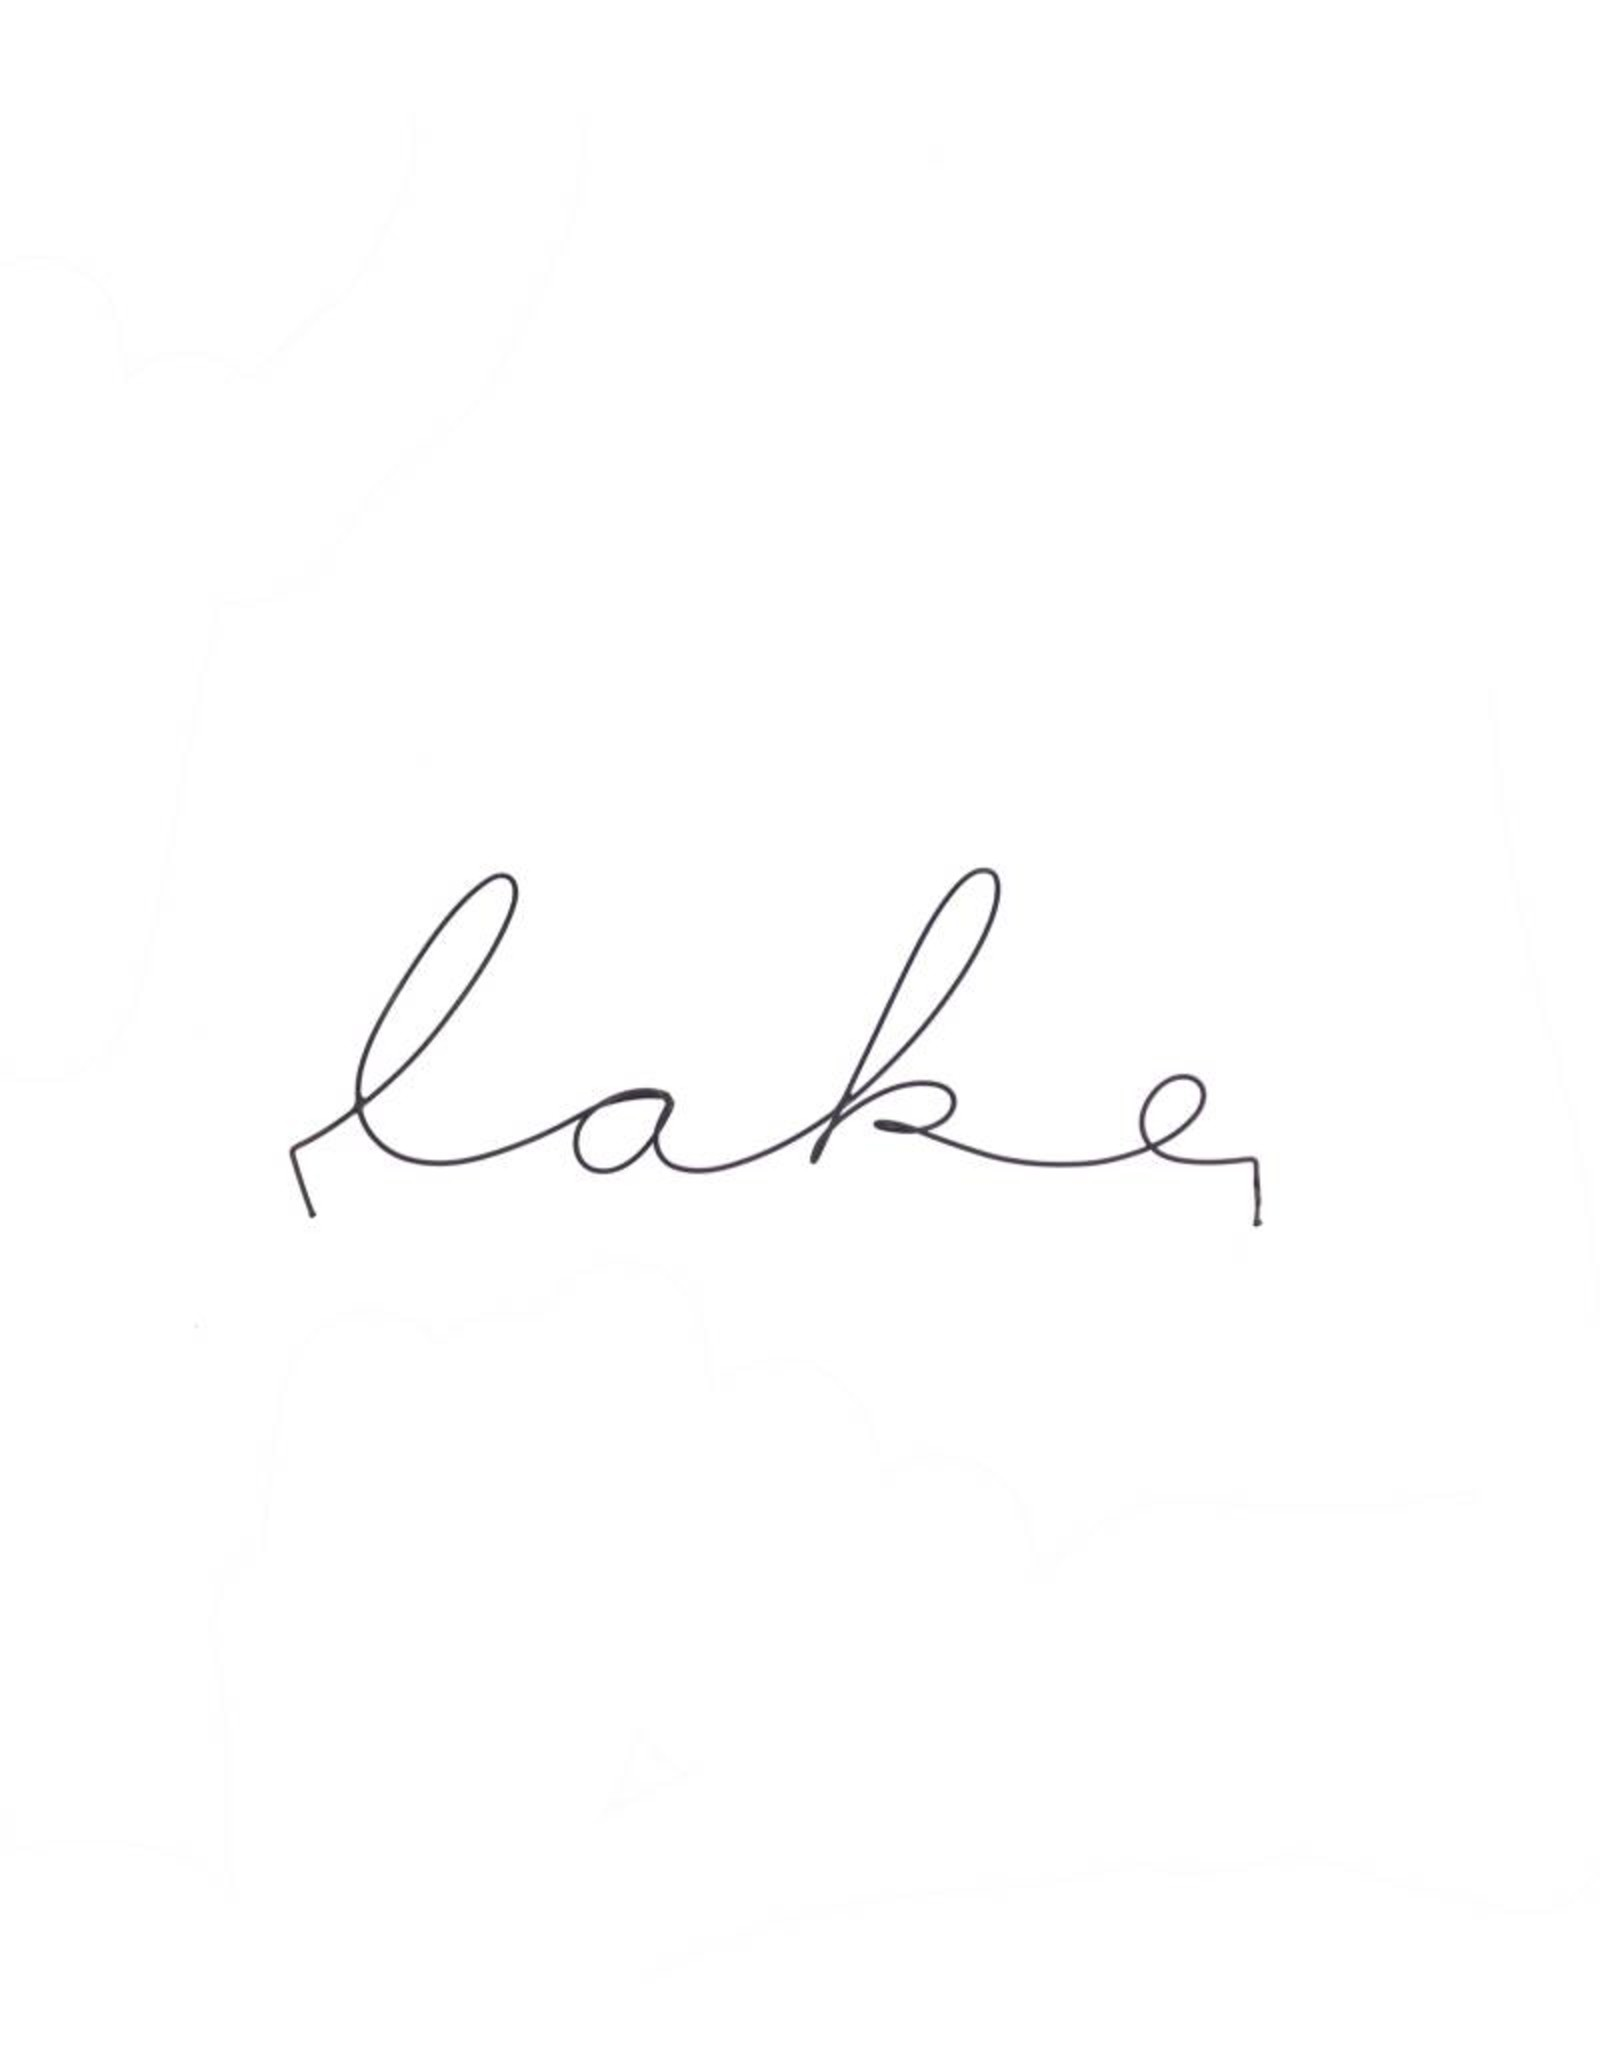 Gauge NYC 'lake' Wire Word Poetic